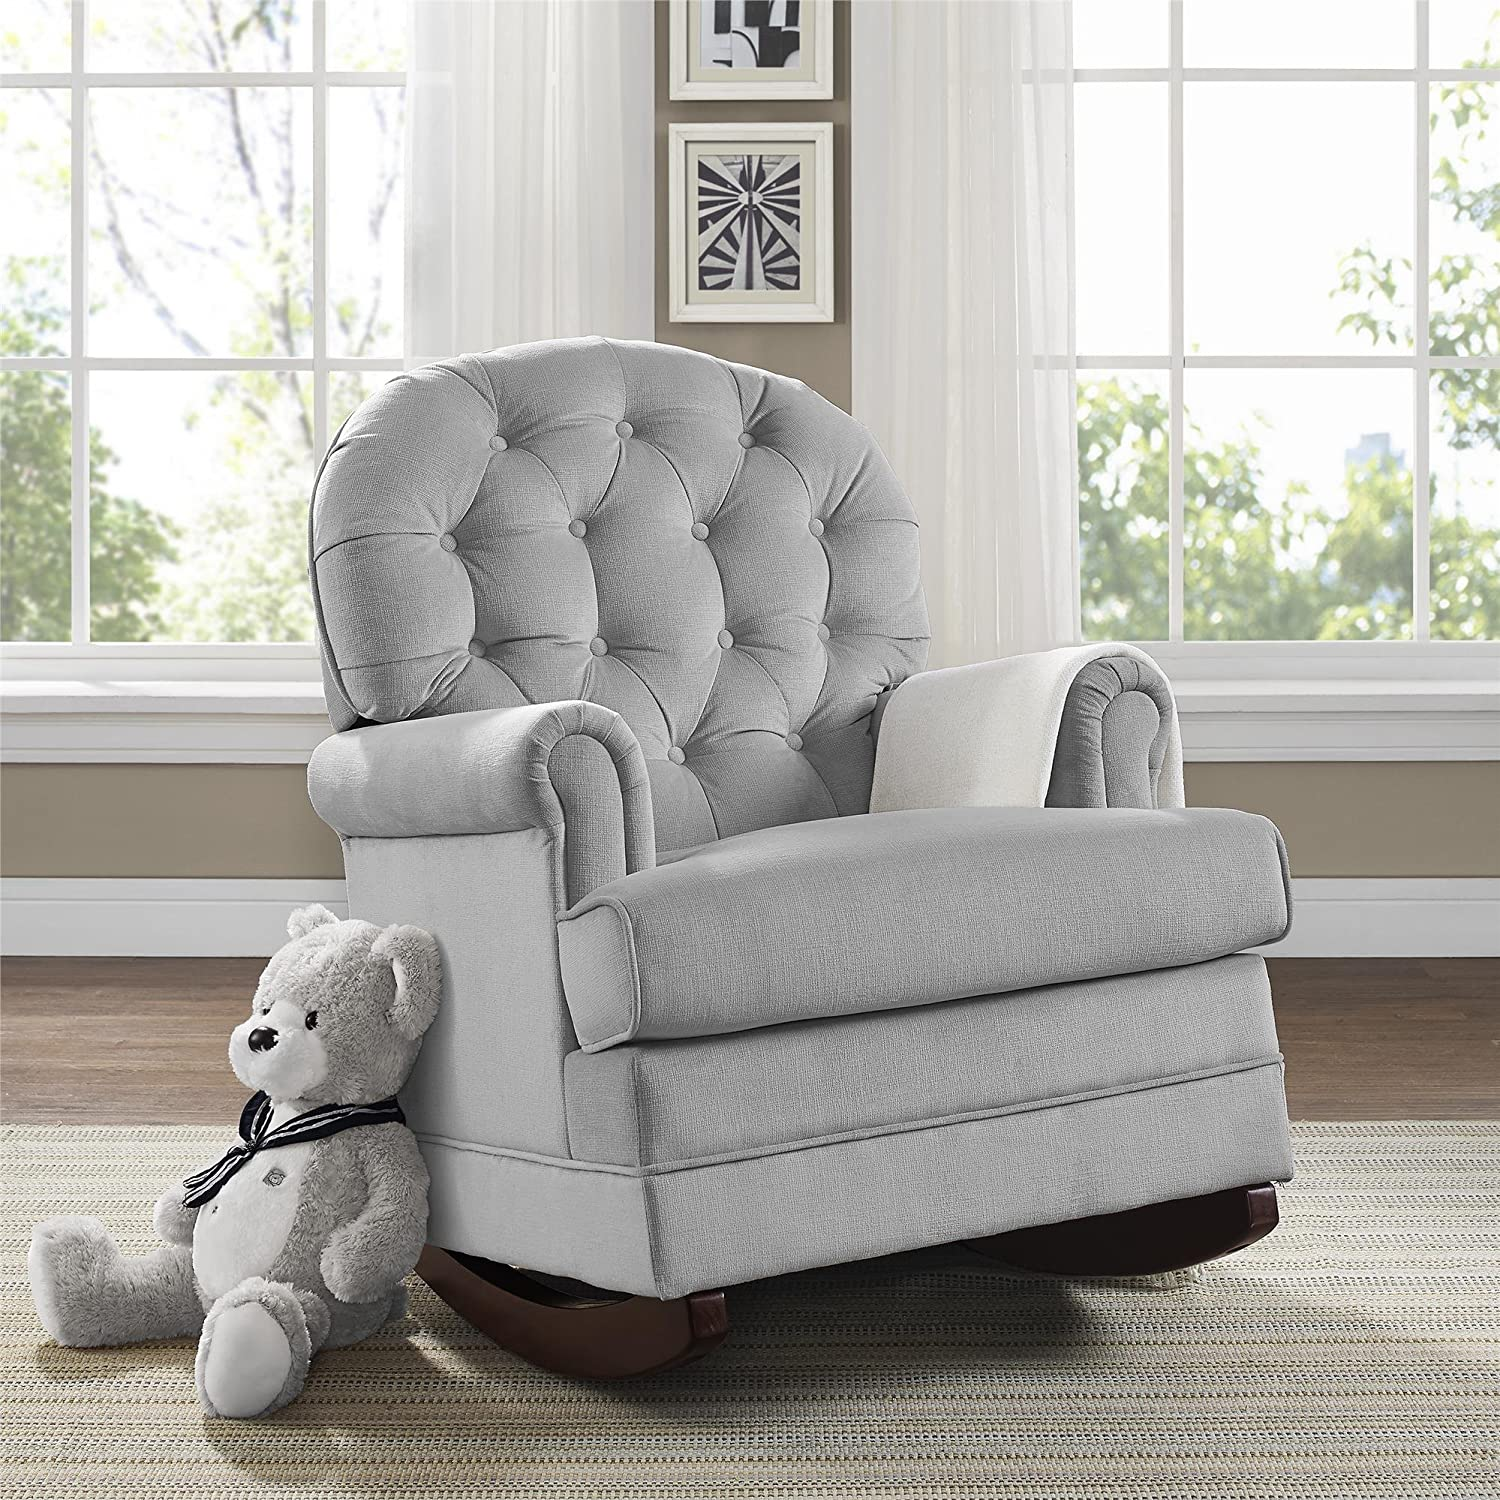 Amazon.com: Baby Relax Brielle Button Tufted, Upholstered Rocker/Gray: Baby